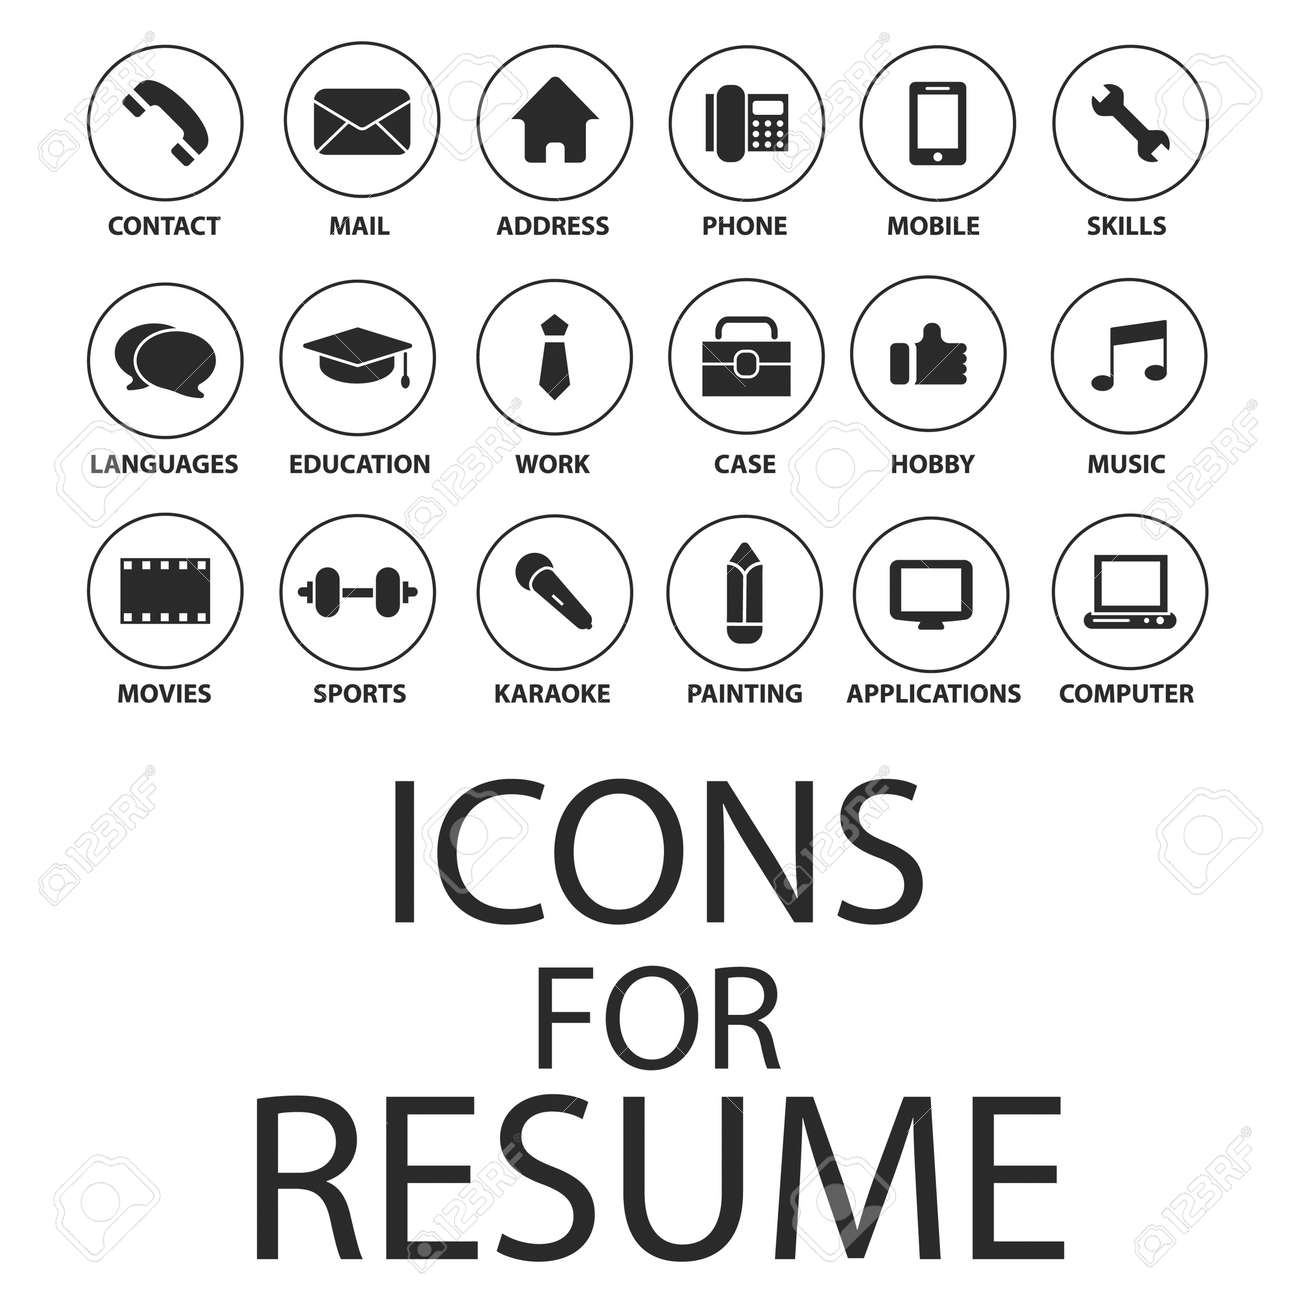 resume icons free - Icons For Resume